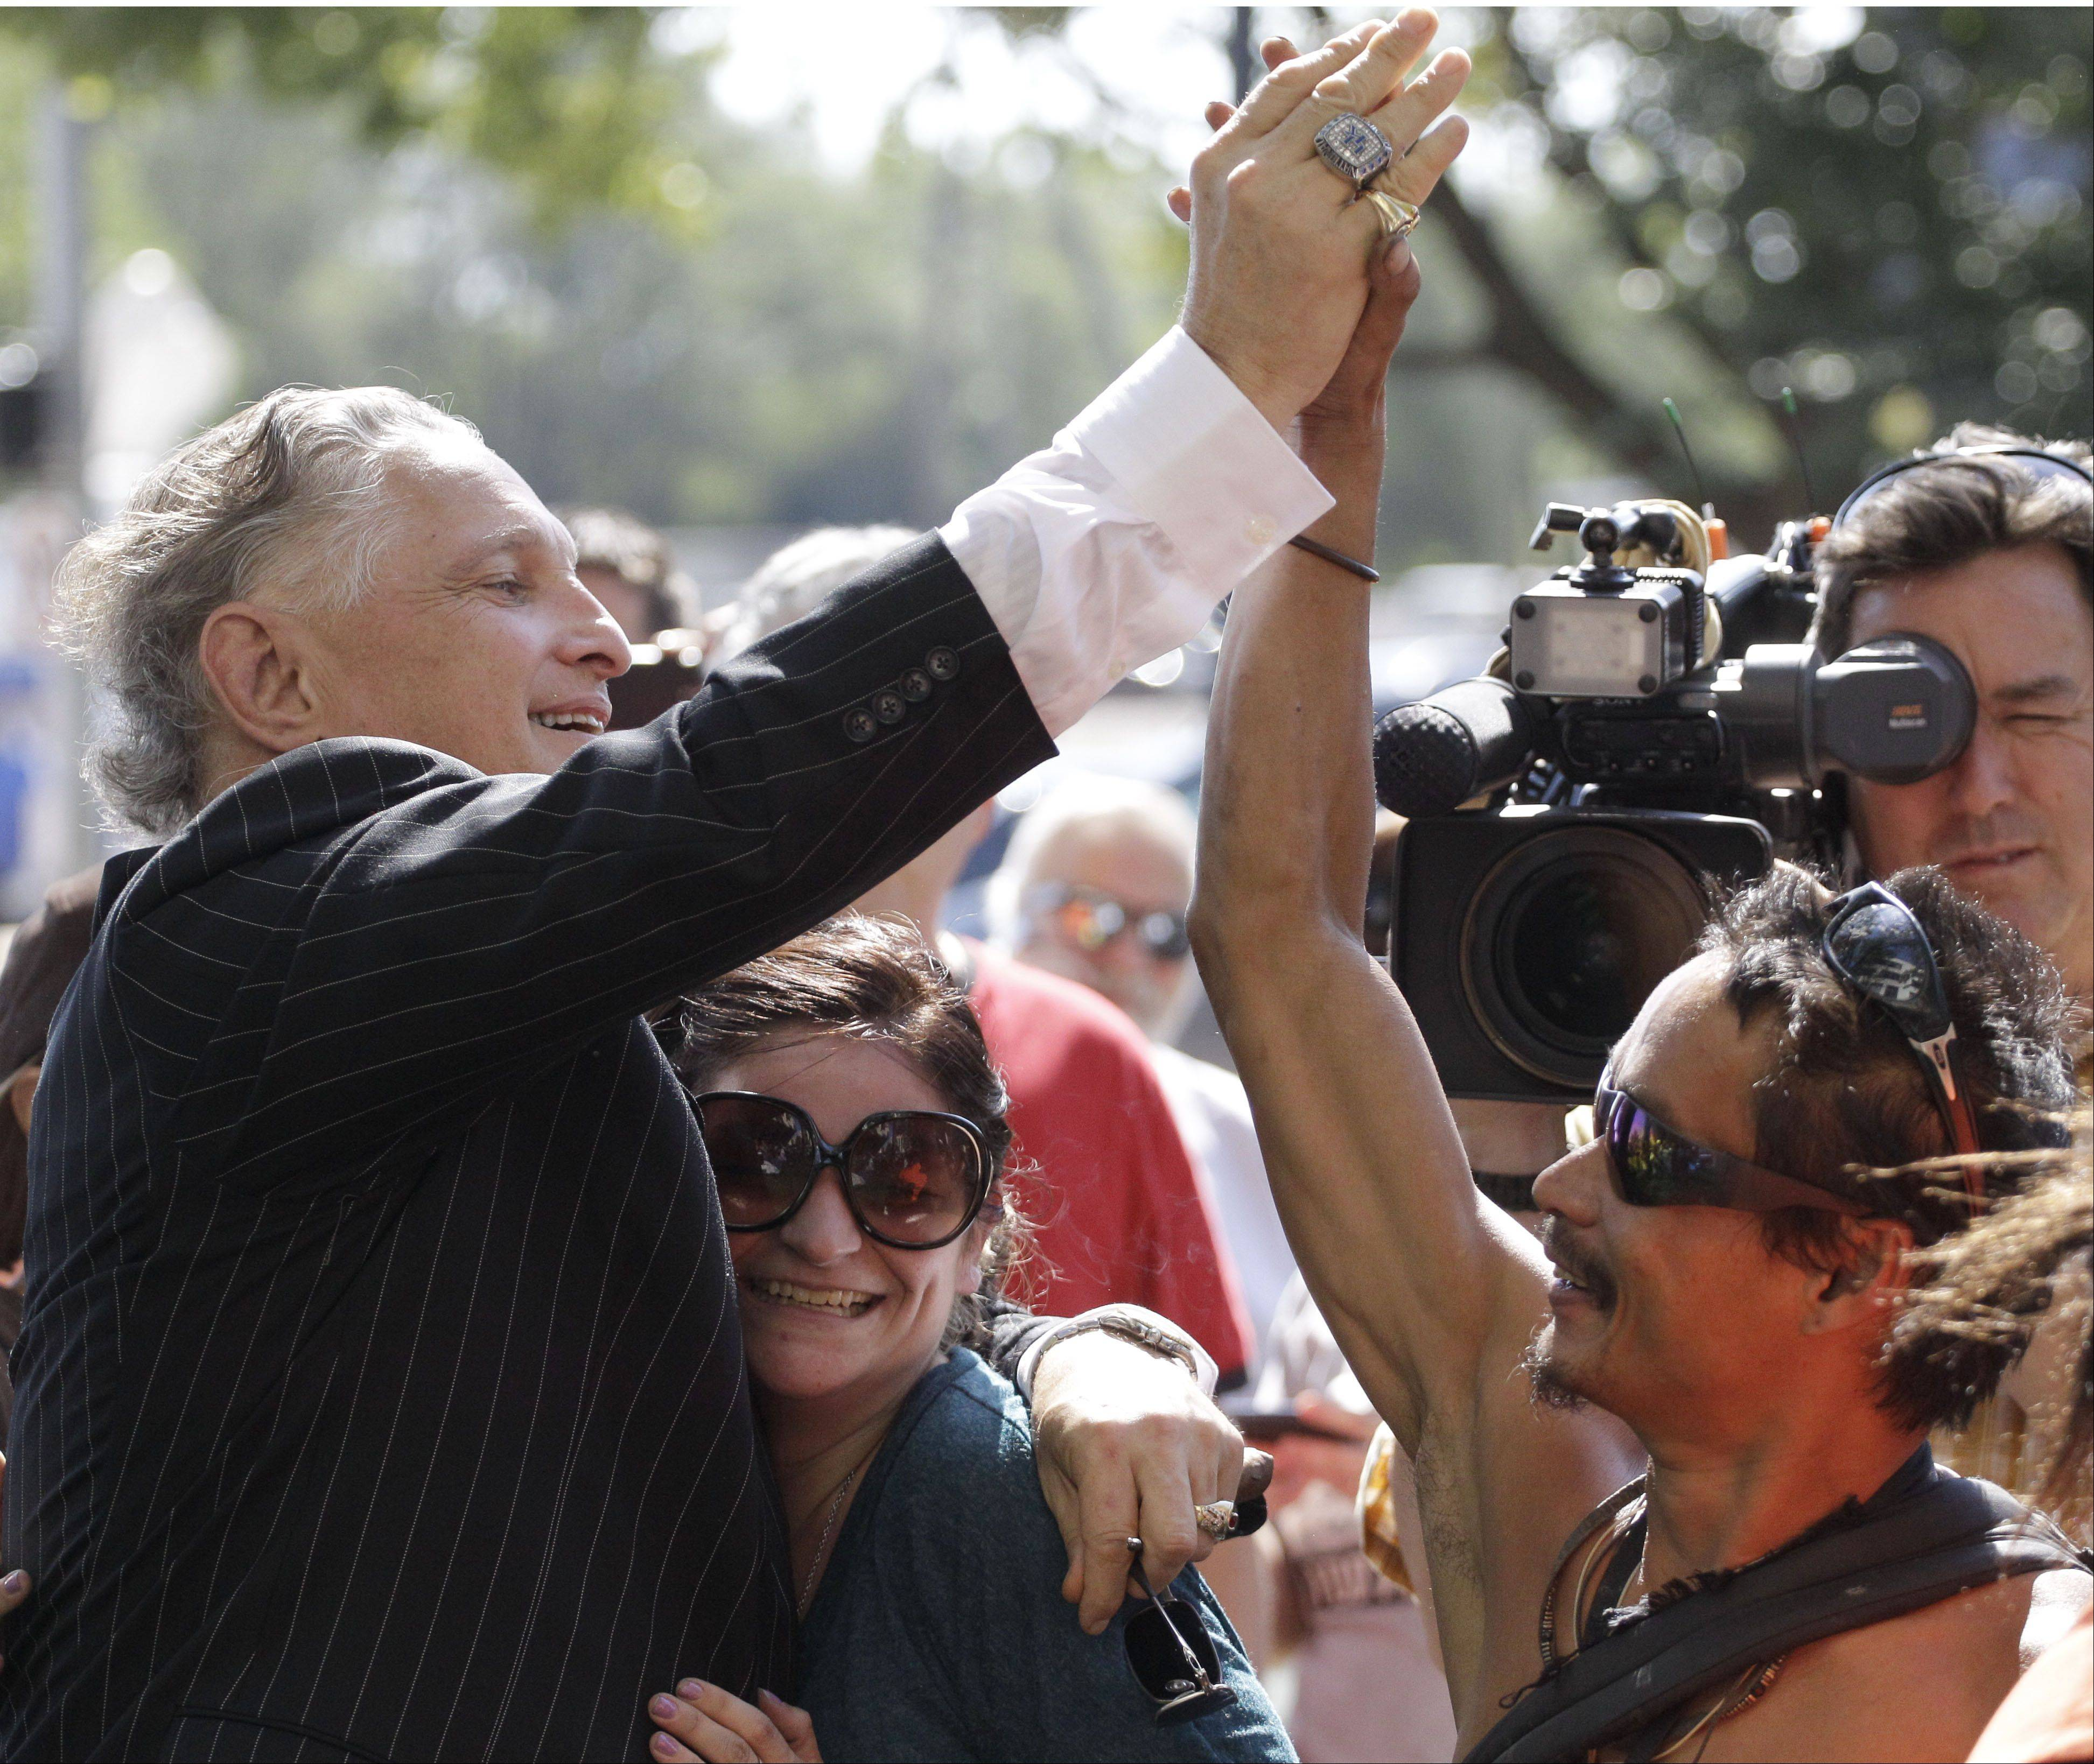 Jeff Ruby high fives Donald Shiner and hugs Stephanie Freitage outside the Will County Courthouse after word spreads that former Bolingbrook police officer Drew Peterson was found guilty of murdering his third wife Kathleen Savio Thursday, Sept. 6, 2012, in Joliet, Ill.